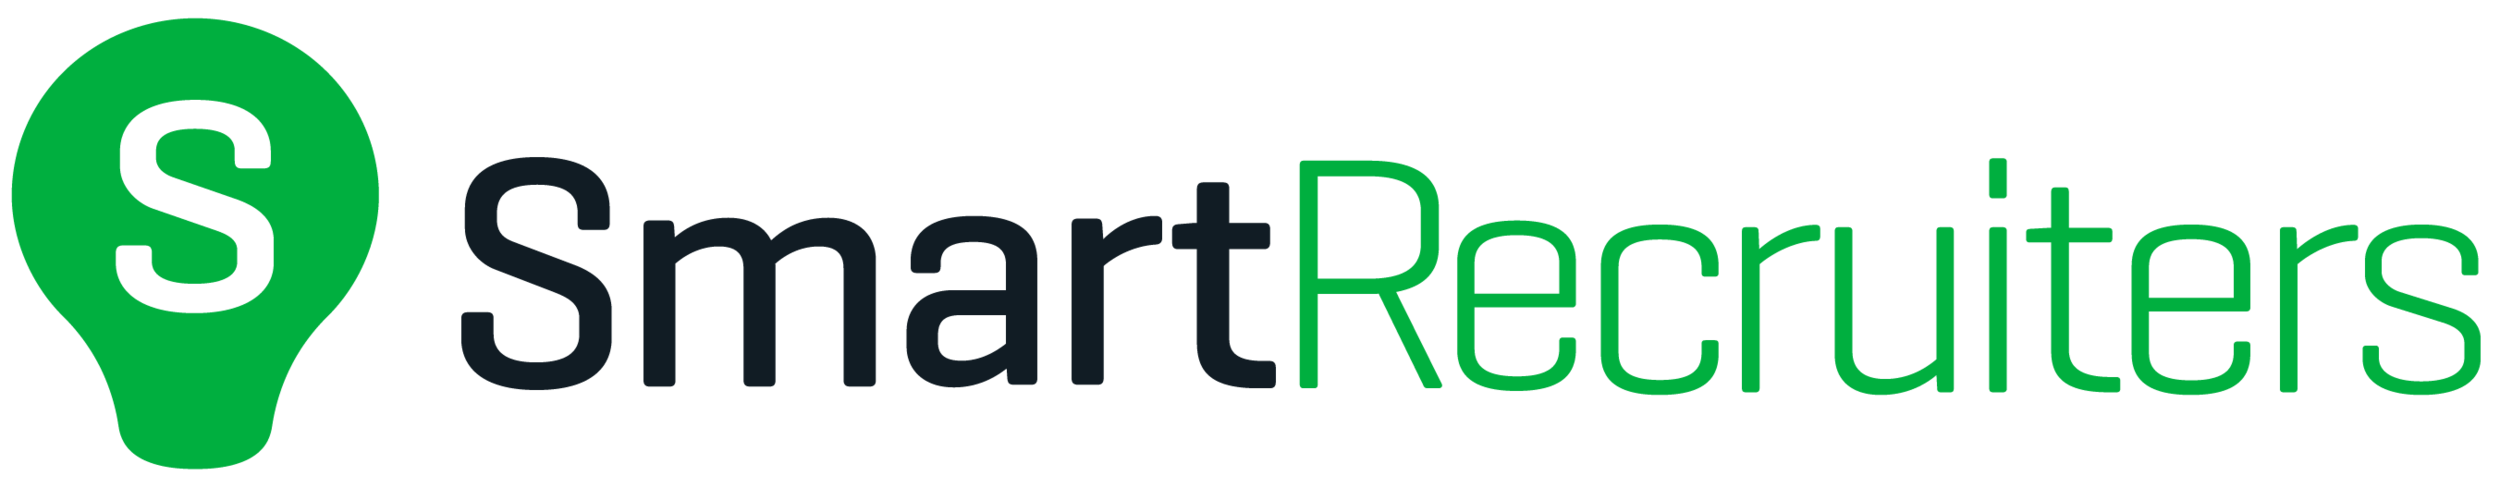 SmartRecruiters-logo.png